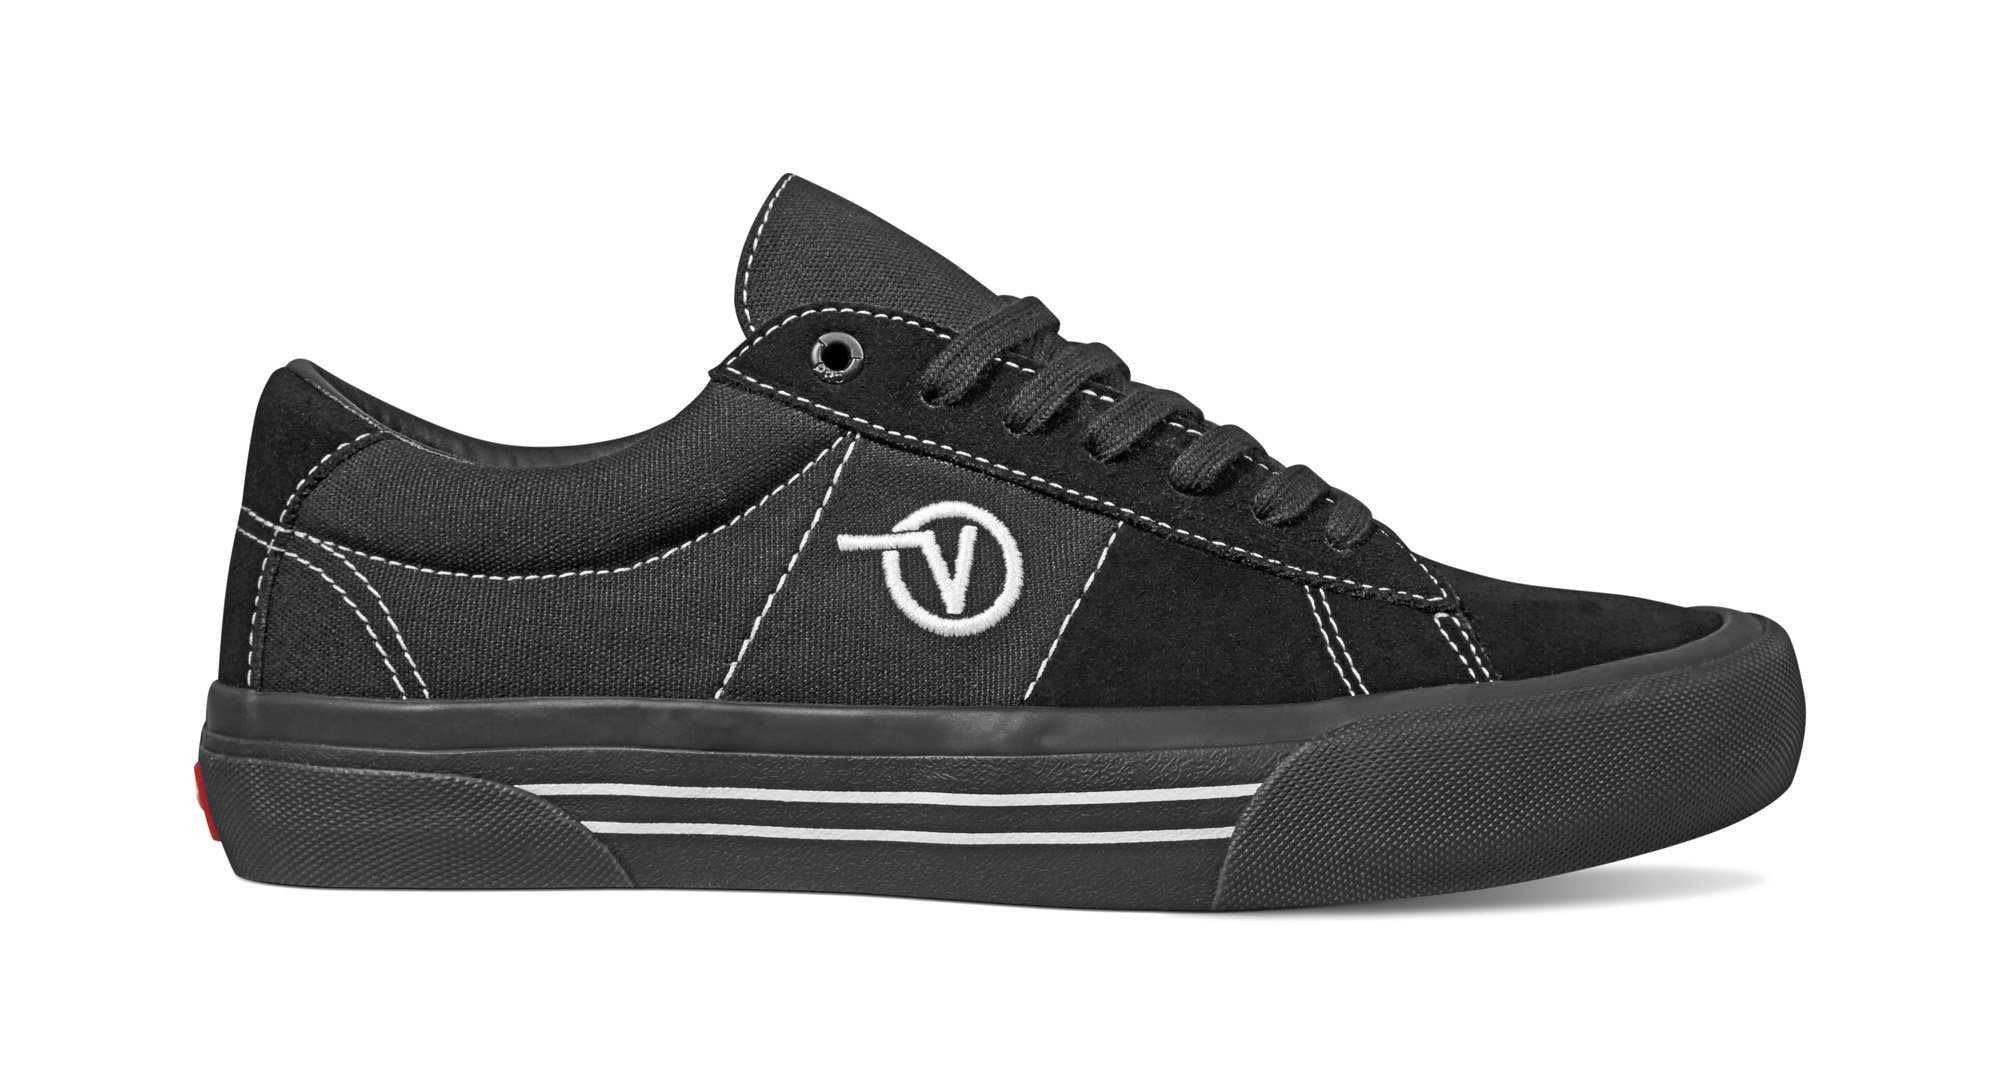 Vans Saddle Sid Pro Black/black/white